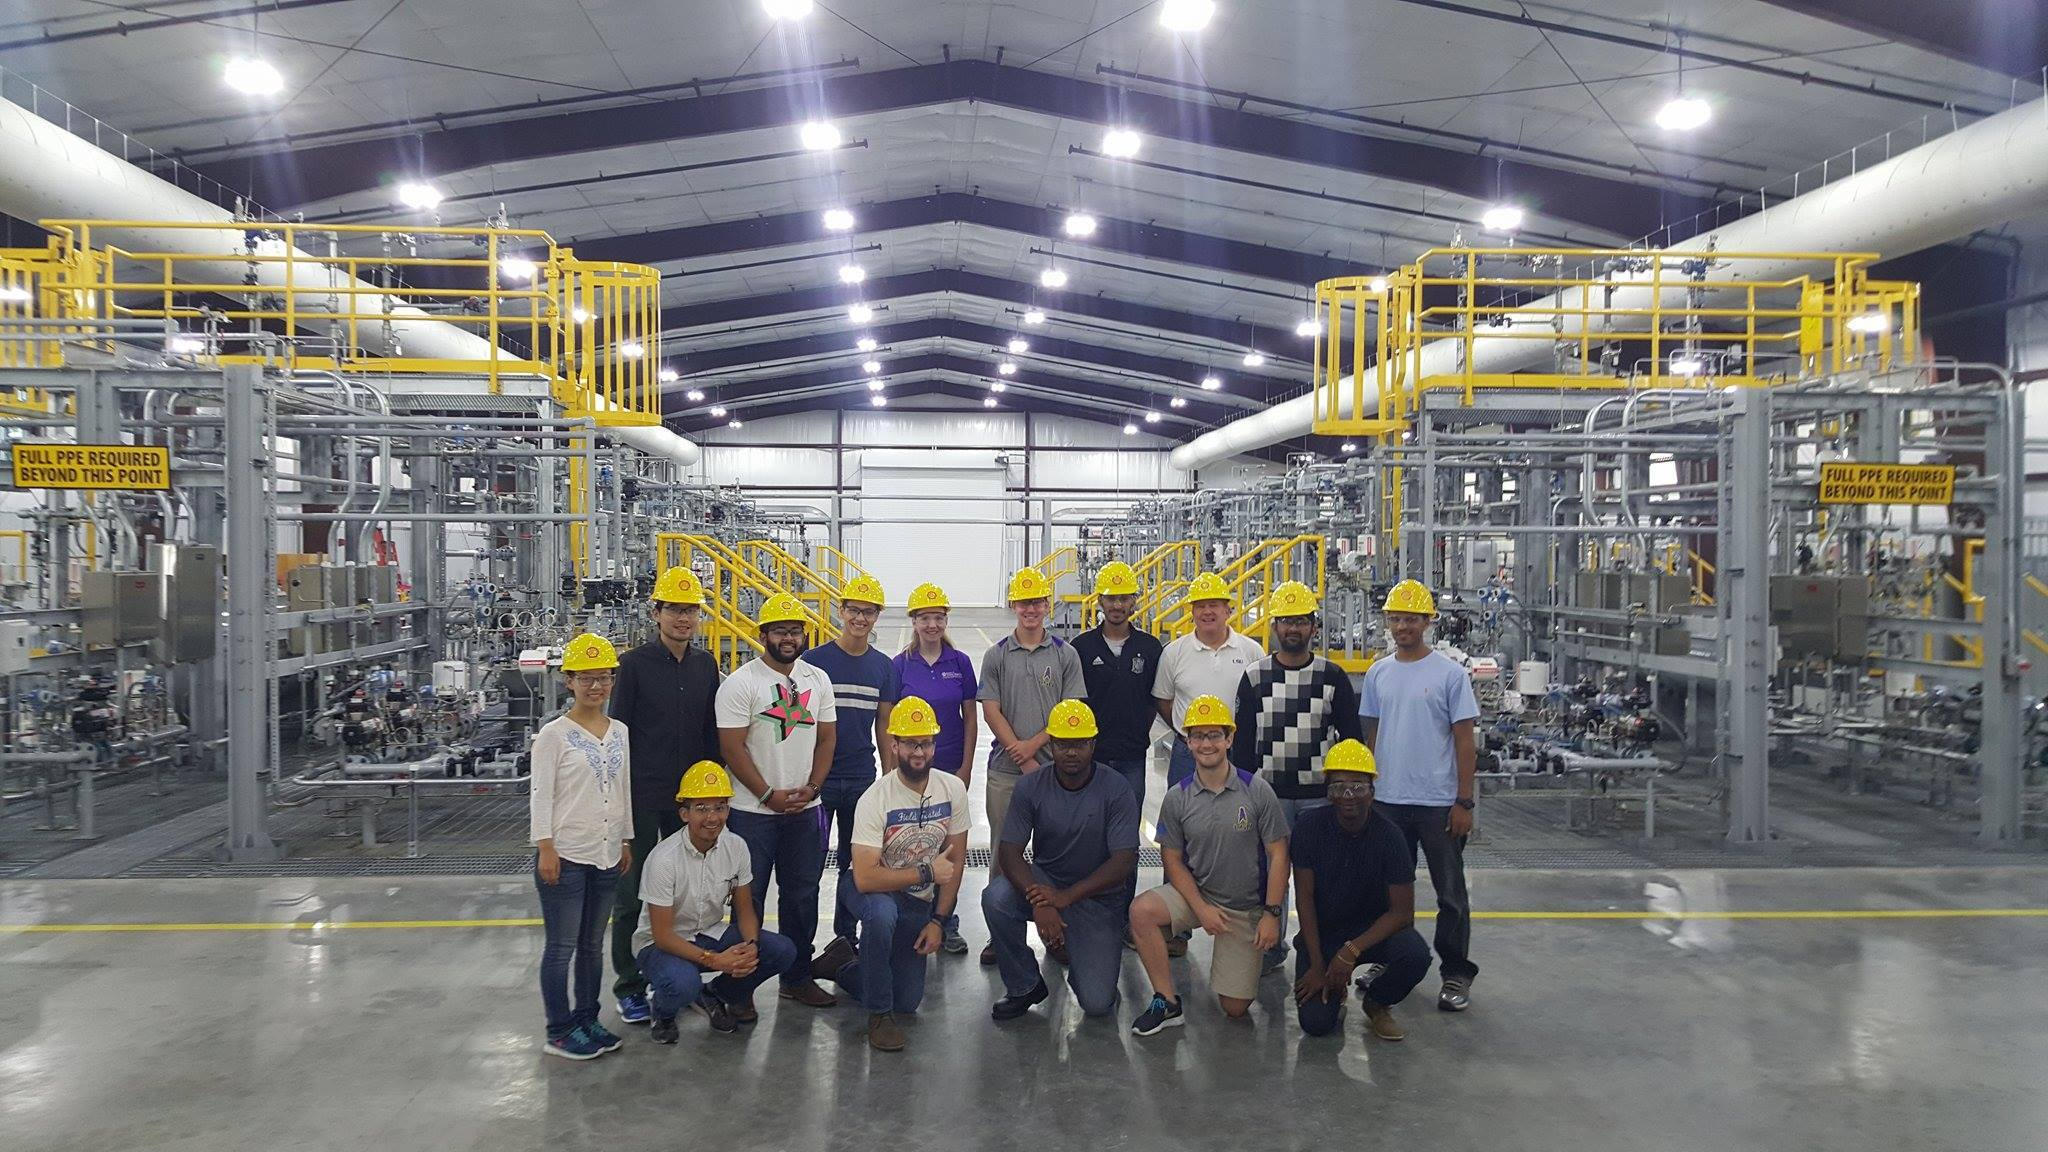 LSU SPE students visit the Shell Robert Training Center